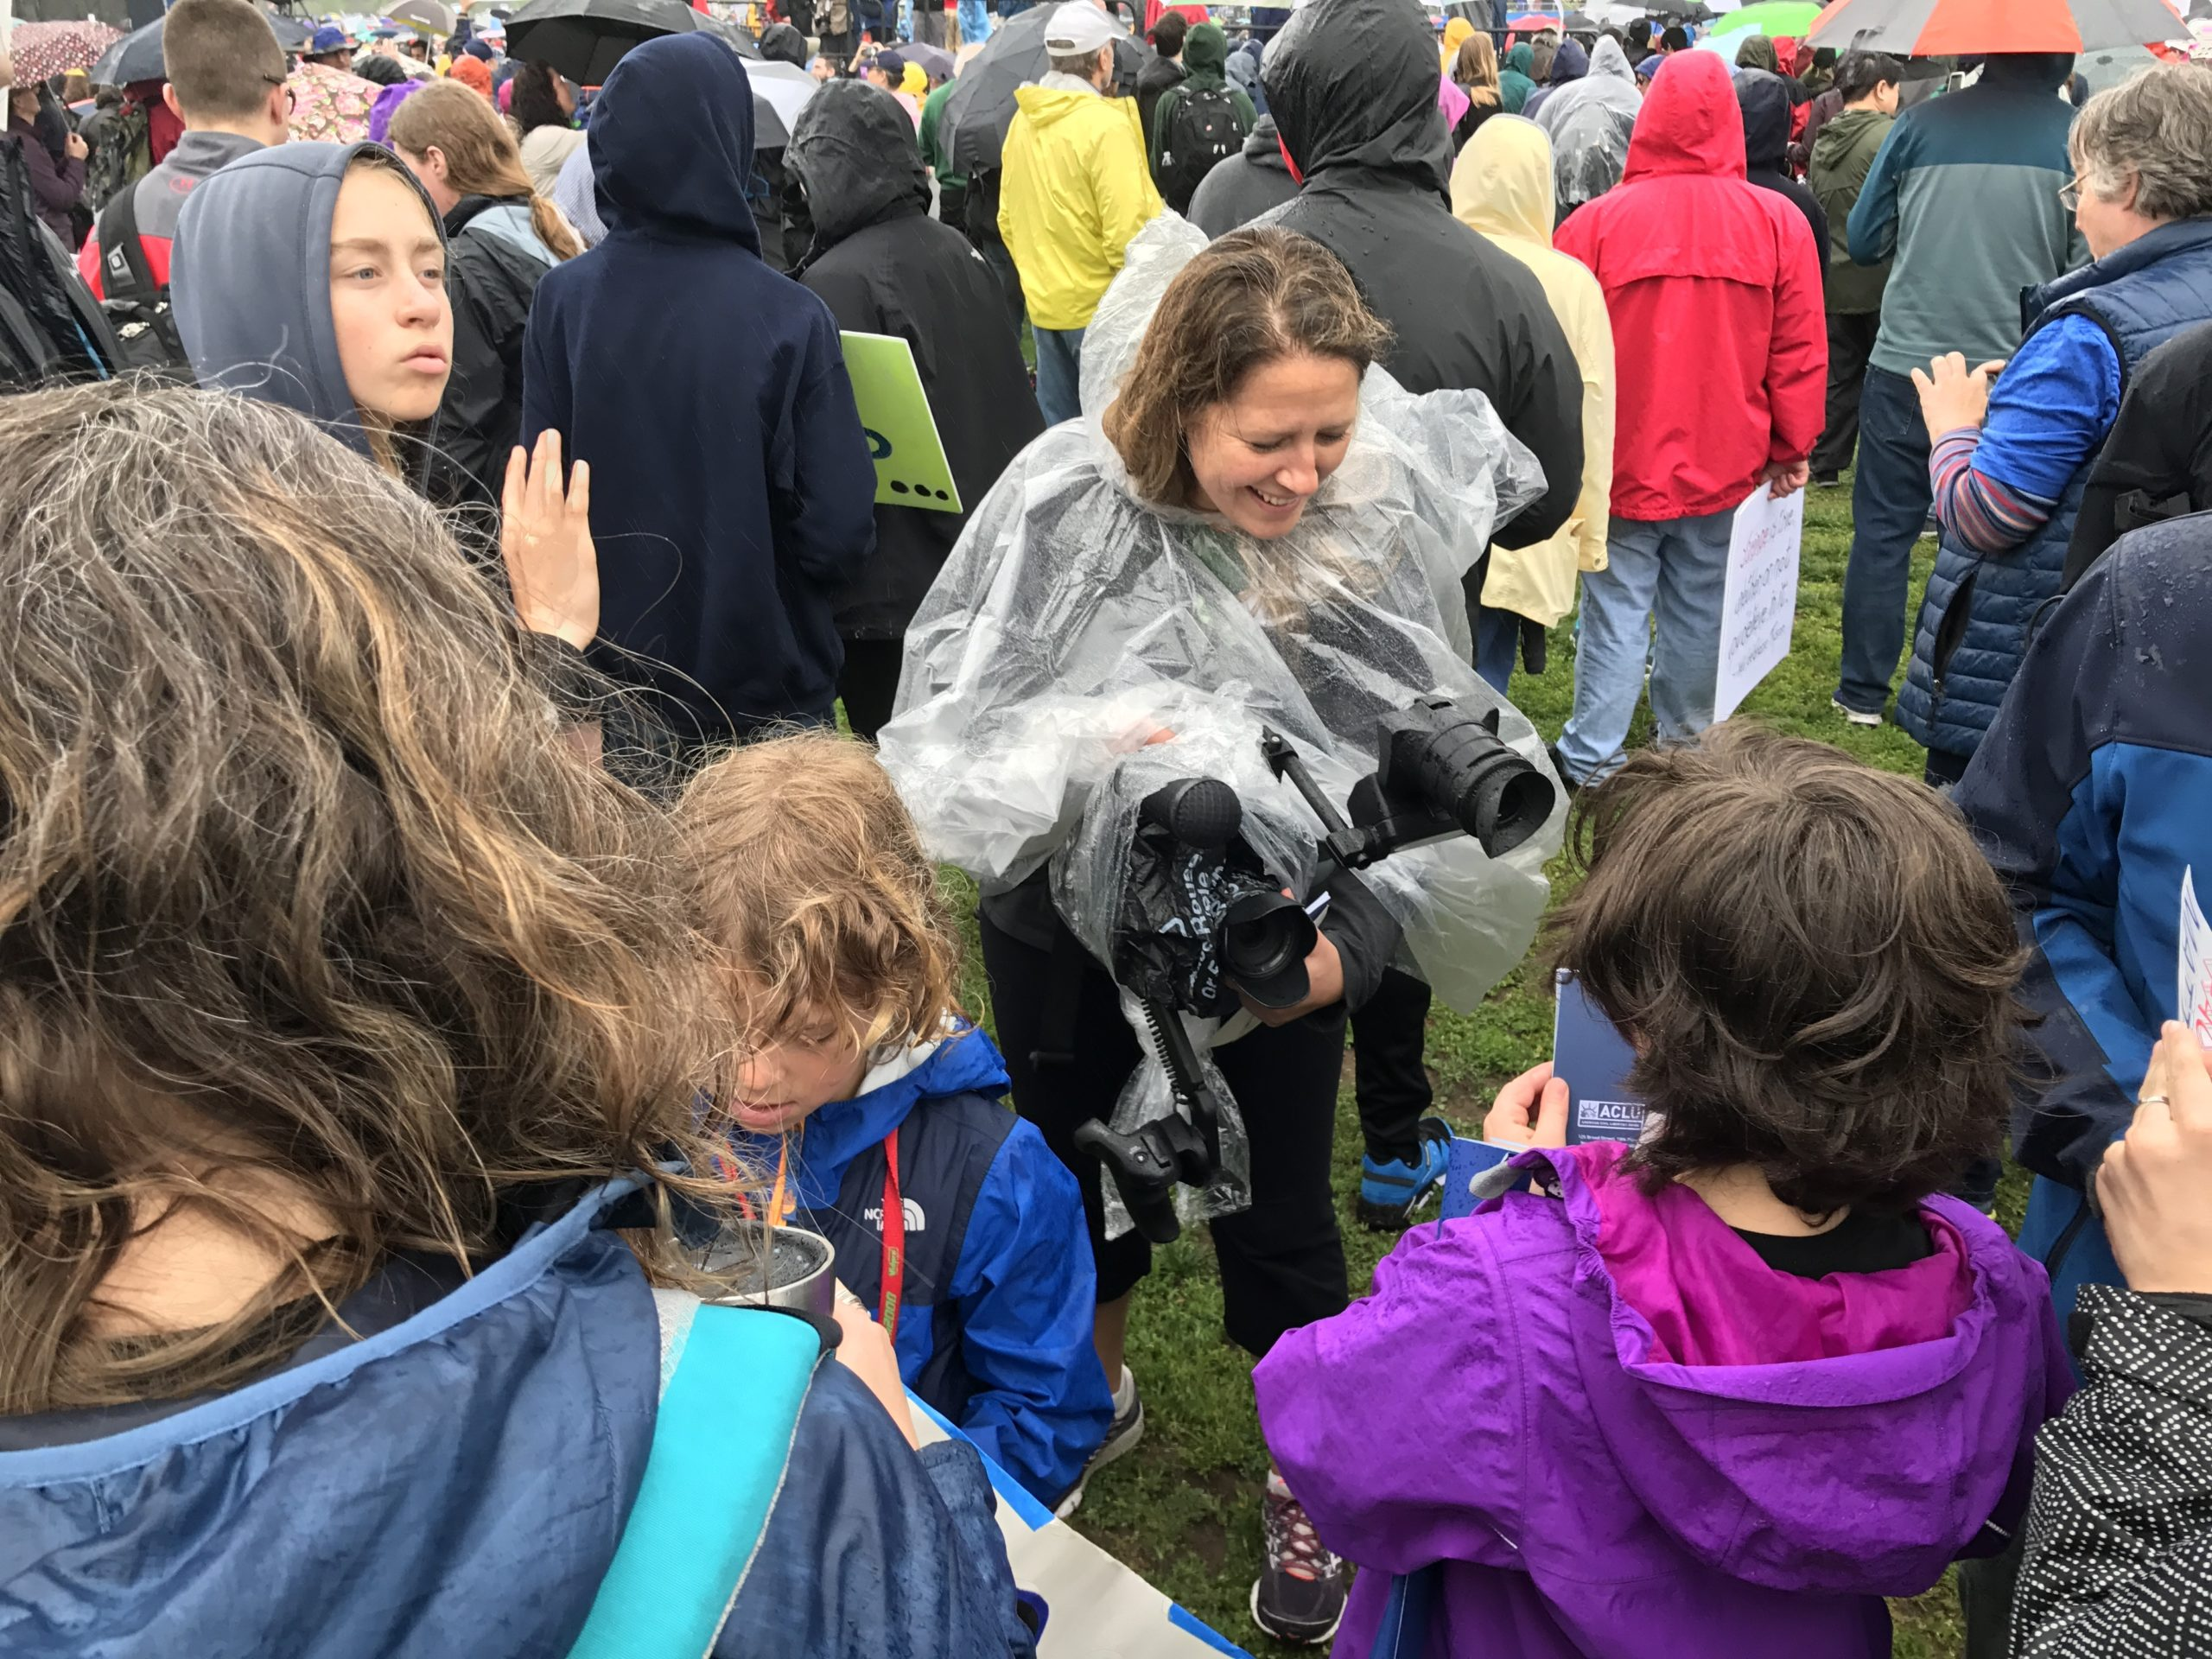 Christi Cooper filming at a science march.